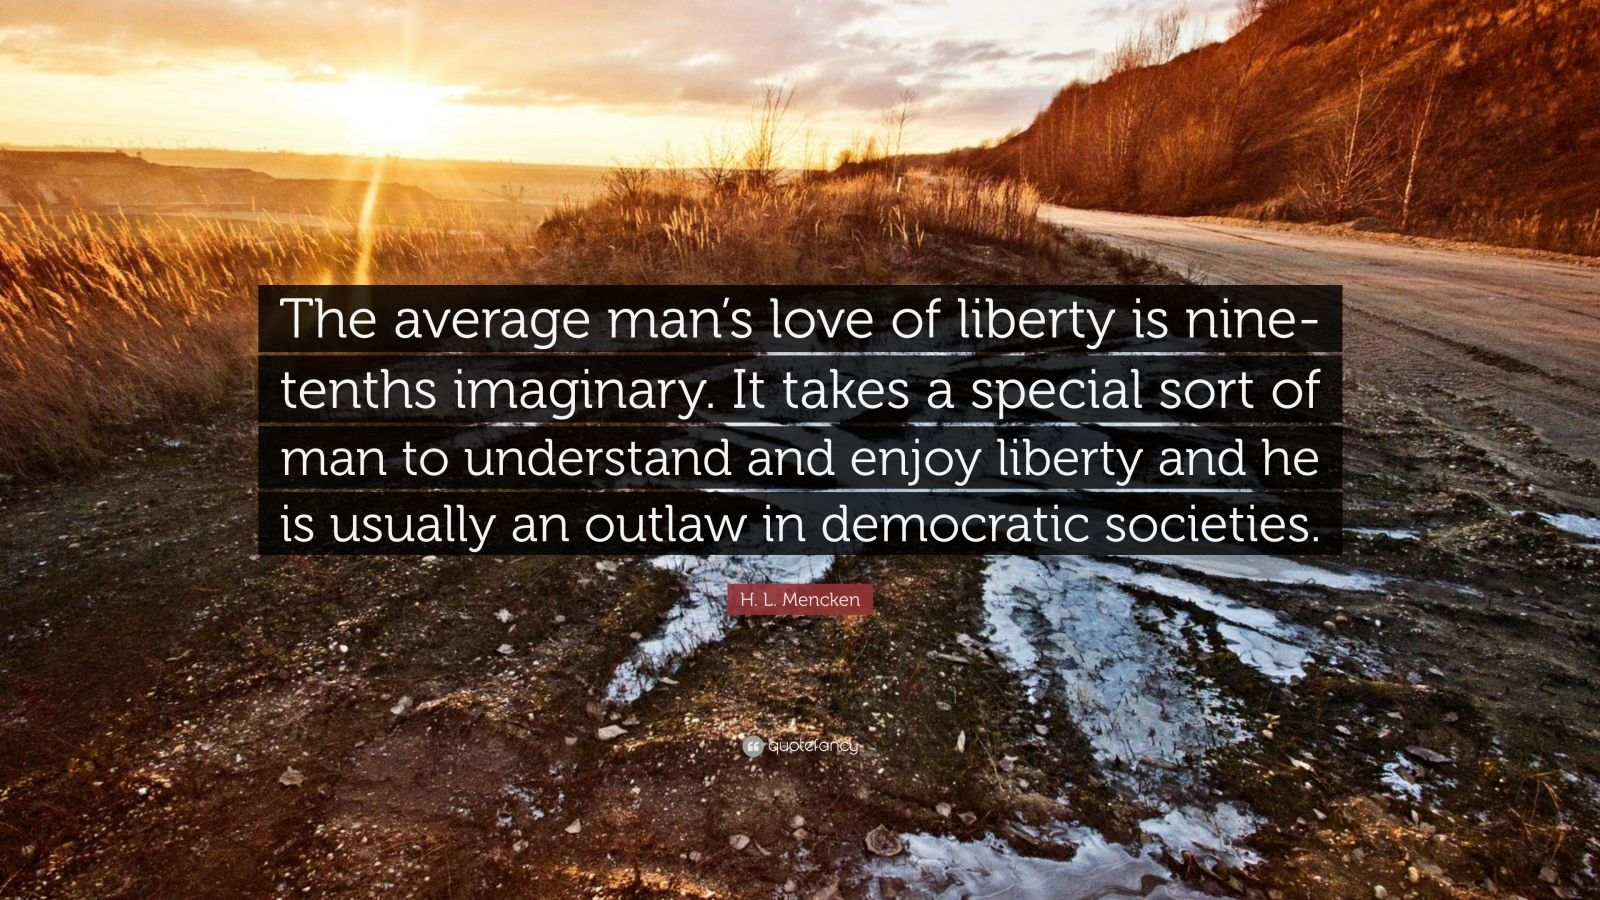 "H. L. Mencken Quote: ""The average man's love of liberty is nine-tenths imaginary. It takes a special sort of man to understand and enjoy liberty and he is usually an outlaw in democratic societies."""